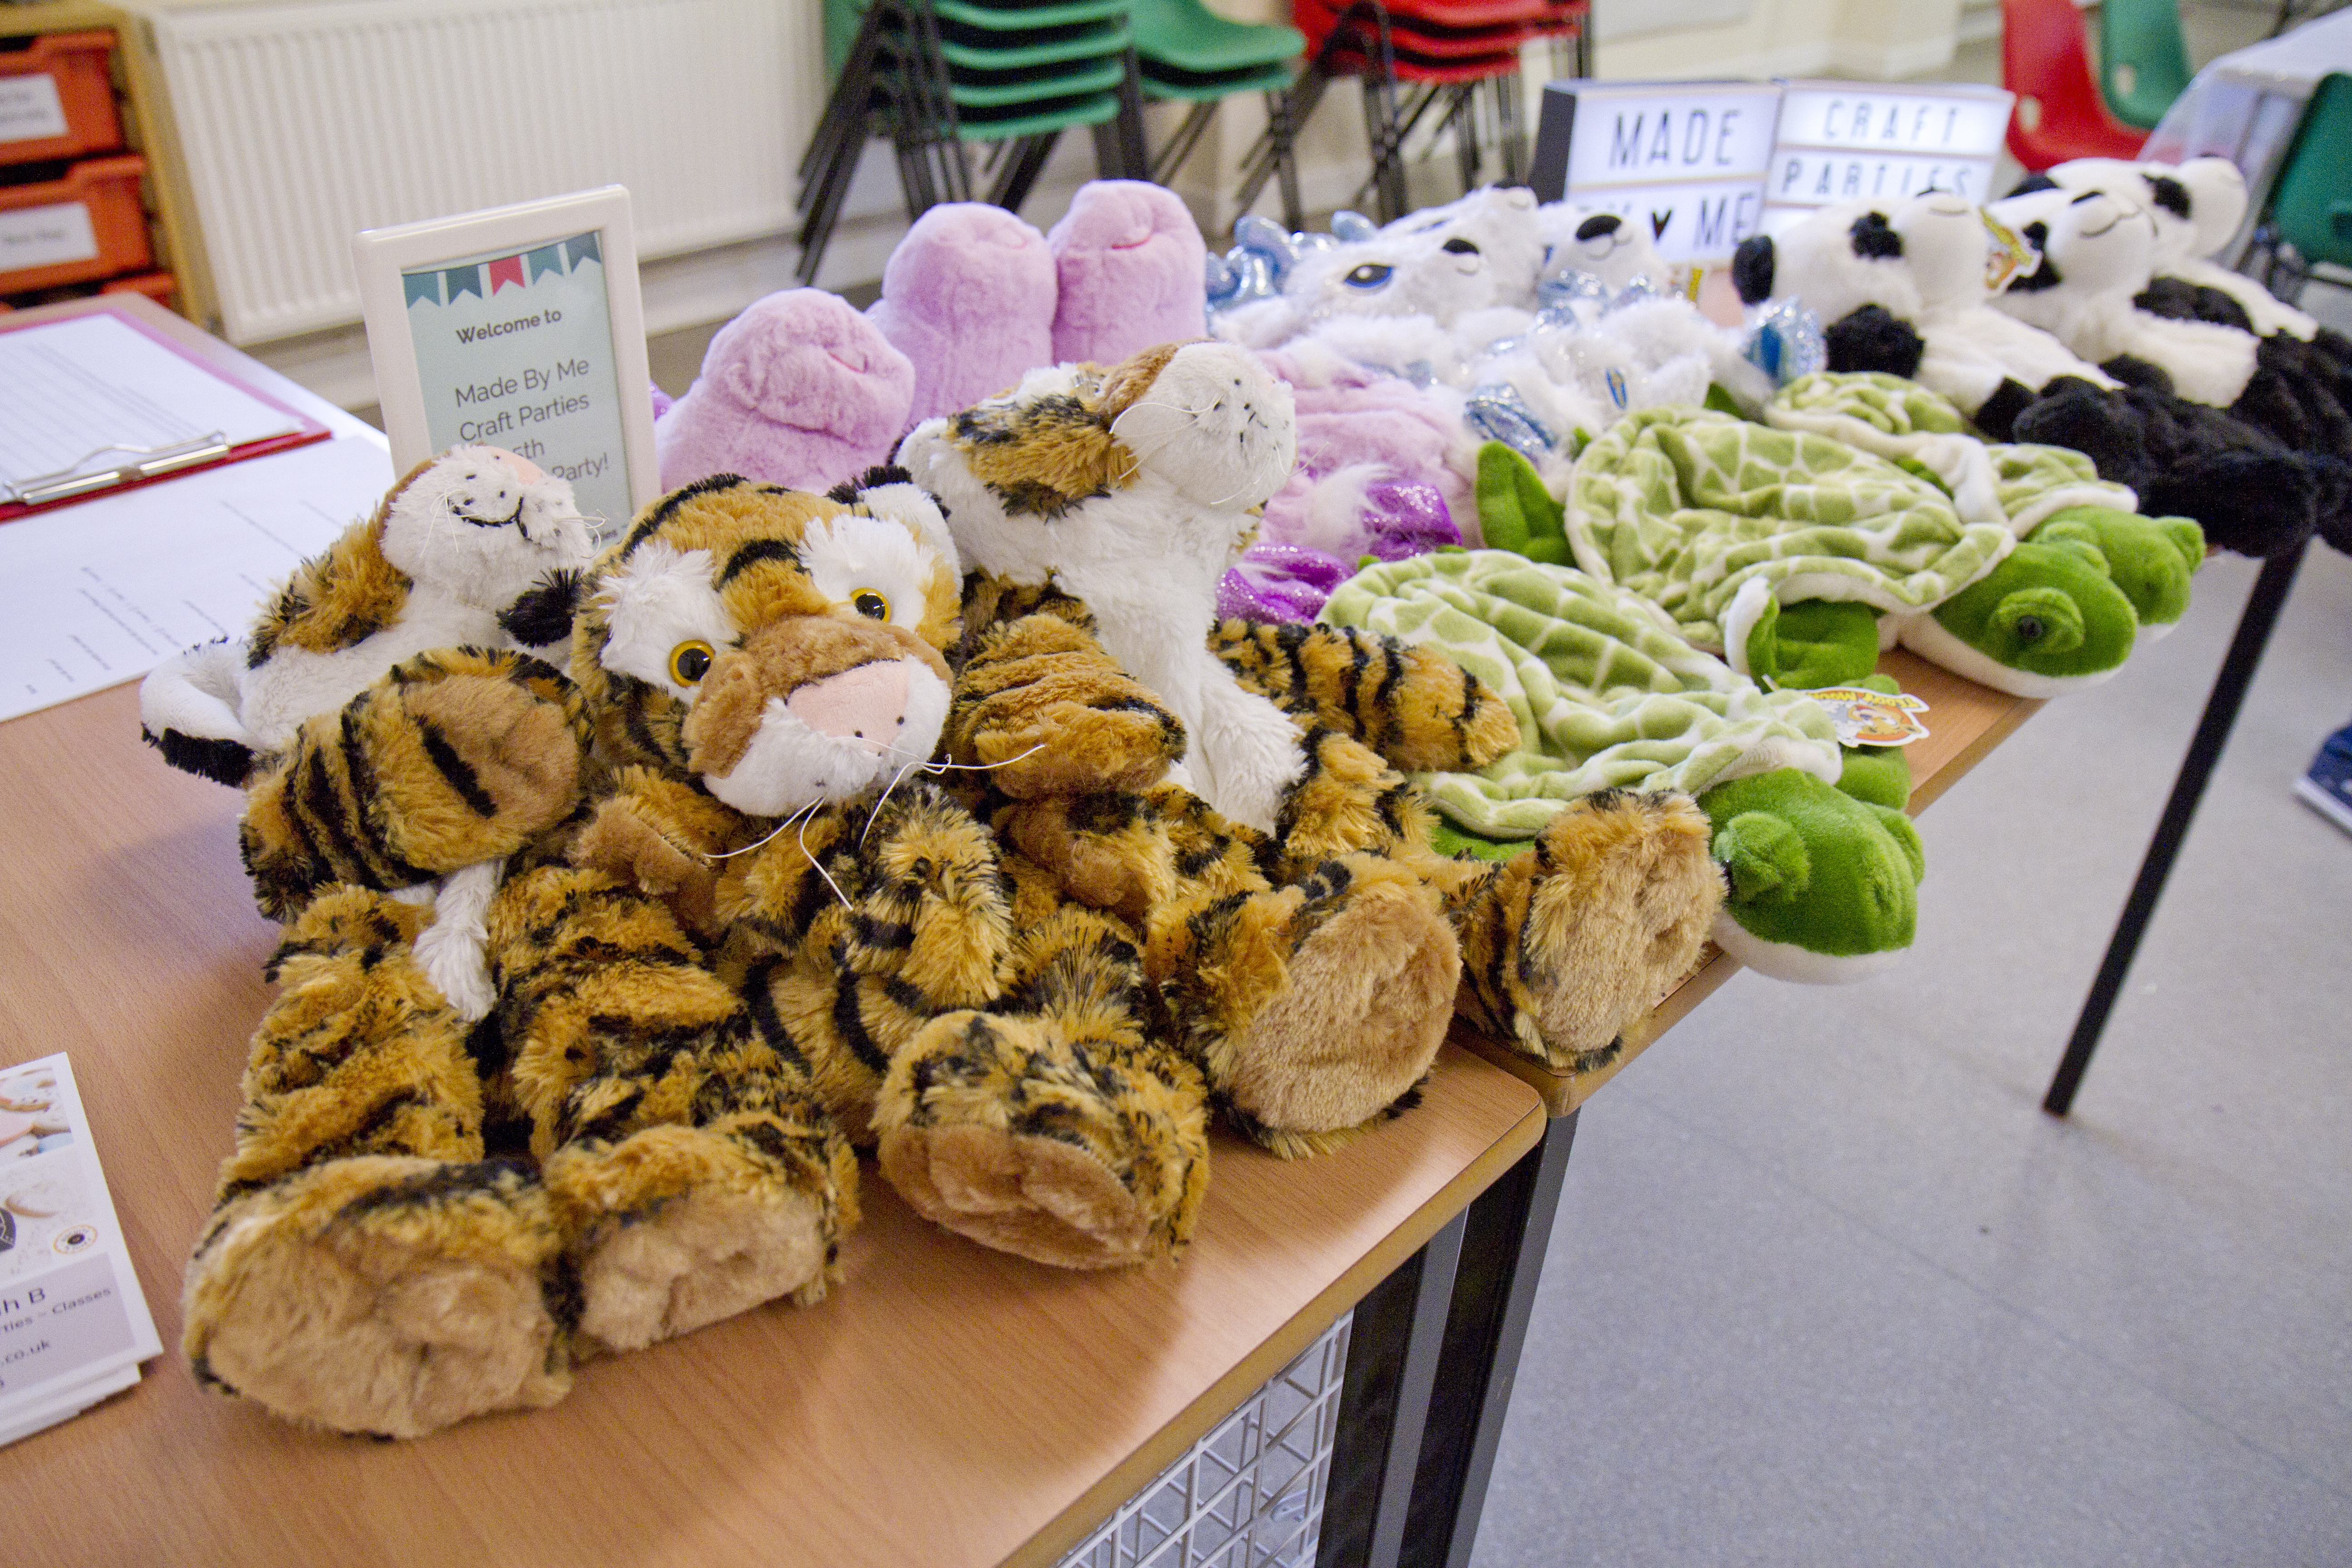 Teddy bear making party. Bear cases laid out ready to be stuffed by children at a bear making craft party by Made By Me Craft Parties.